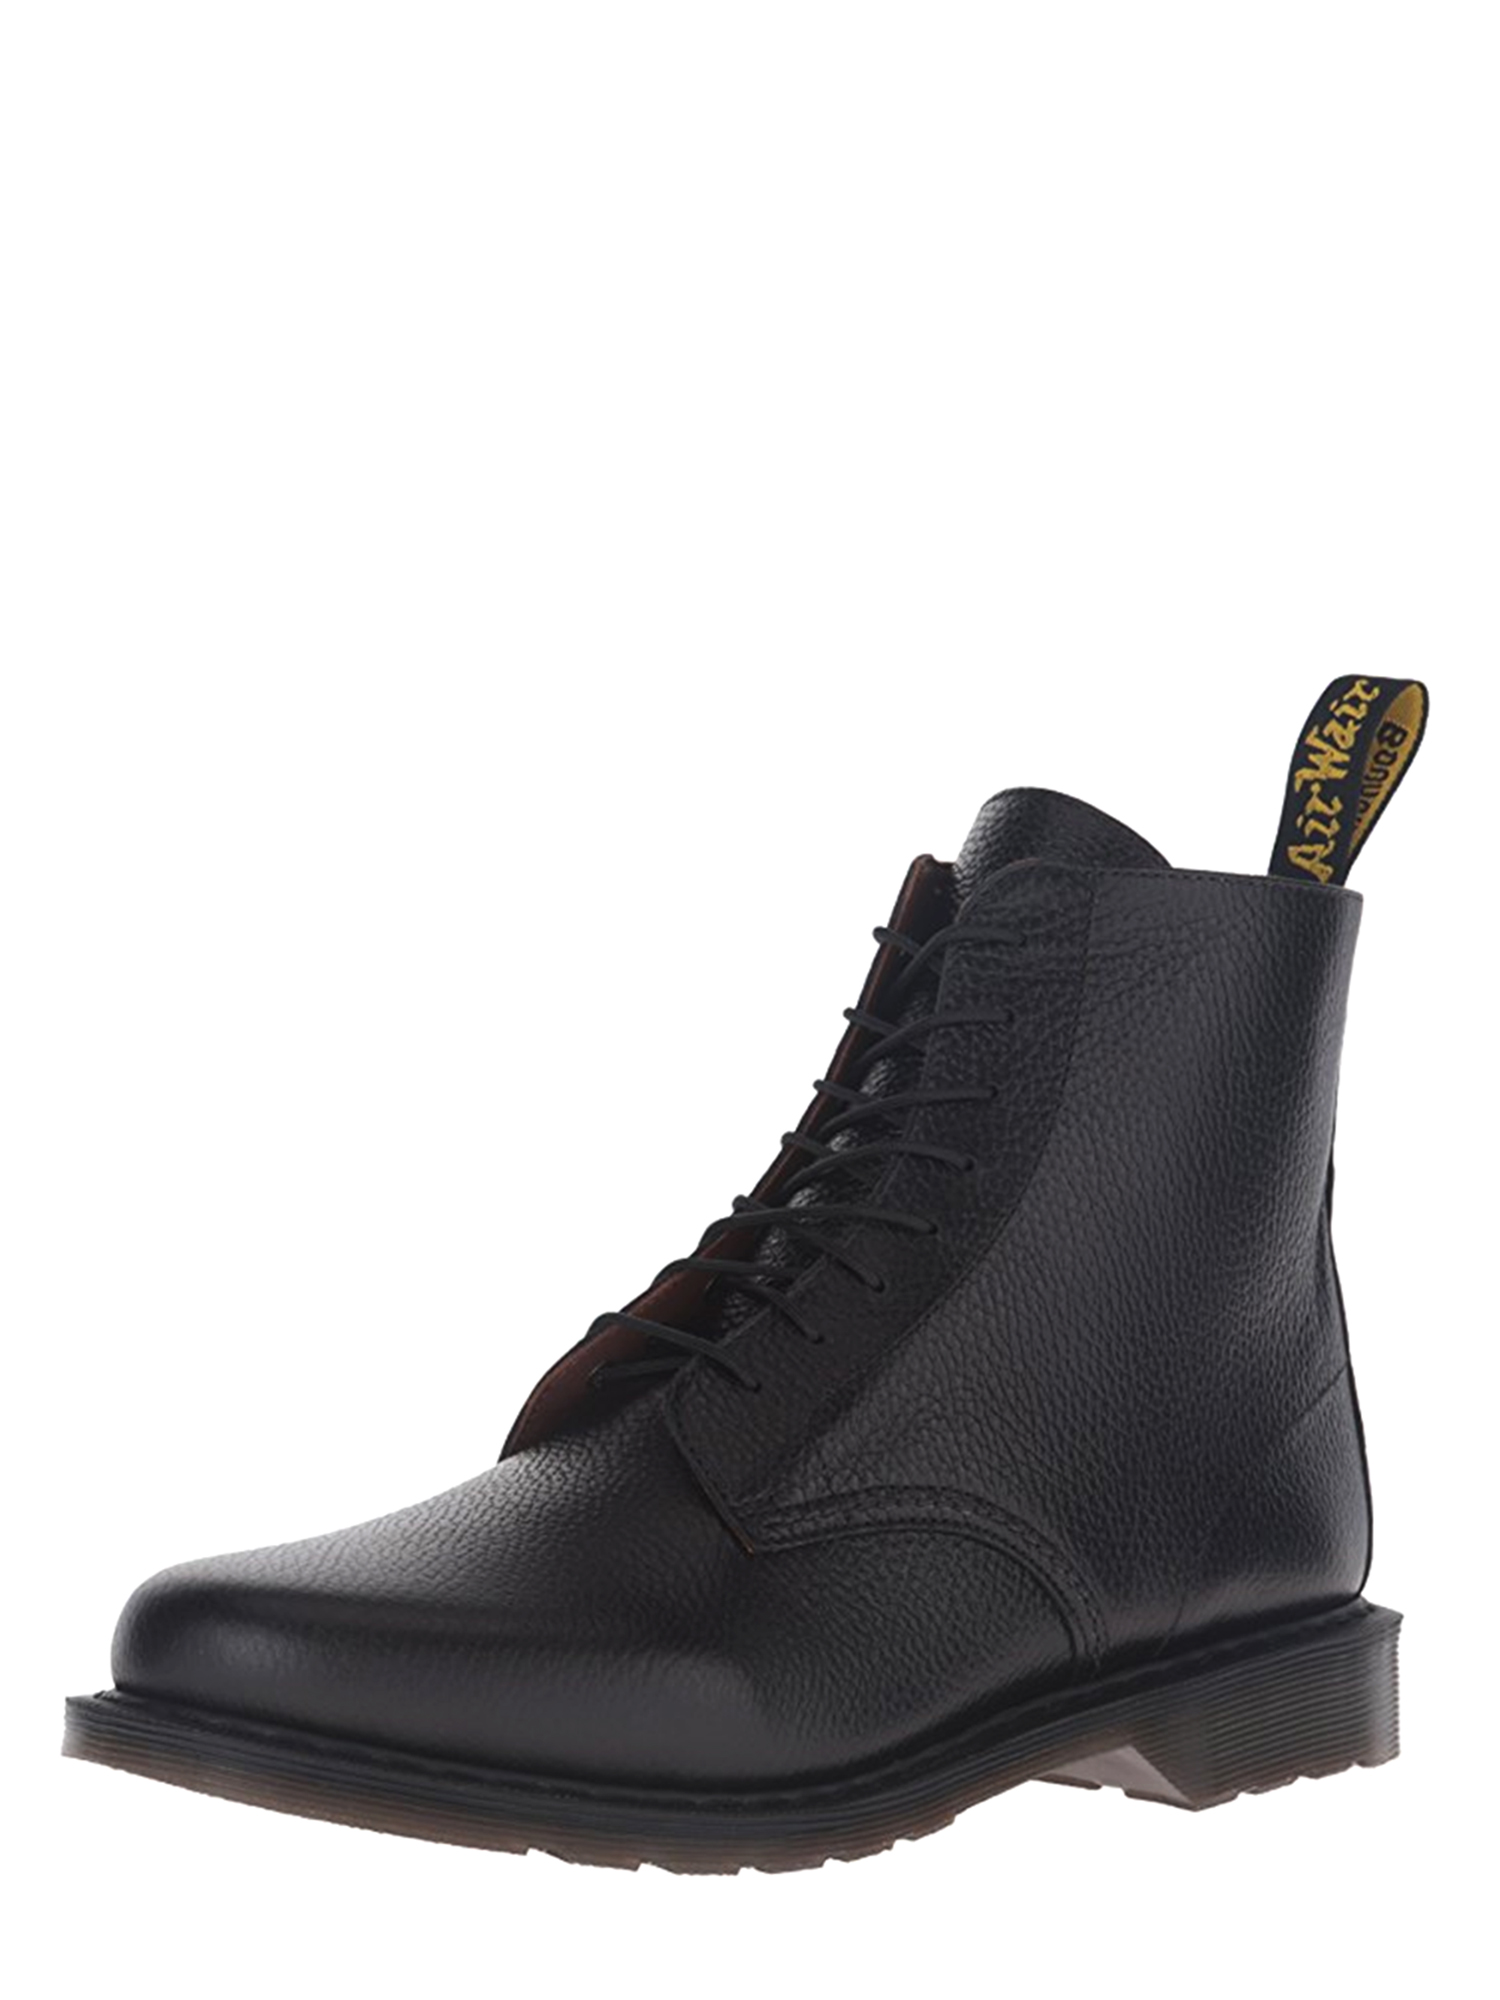 Dr. Martens Men's Eldritch Boots R21197001 Black SZ UK7/US8